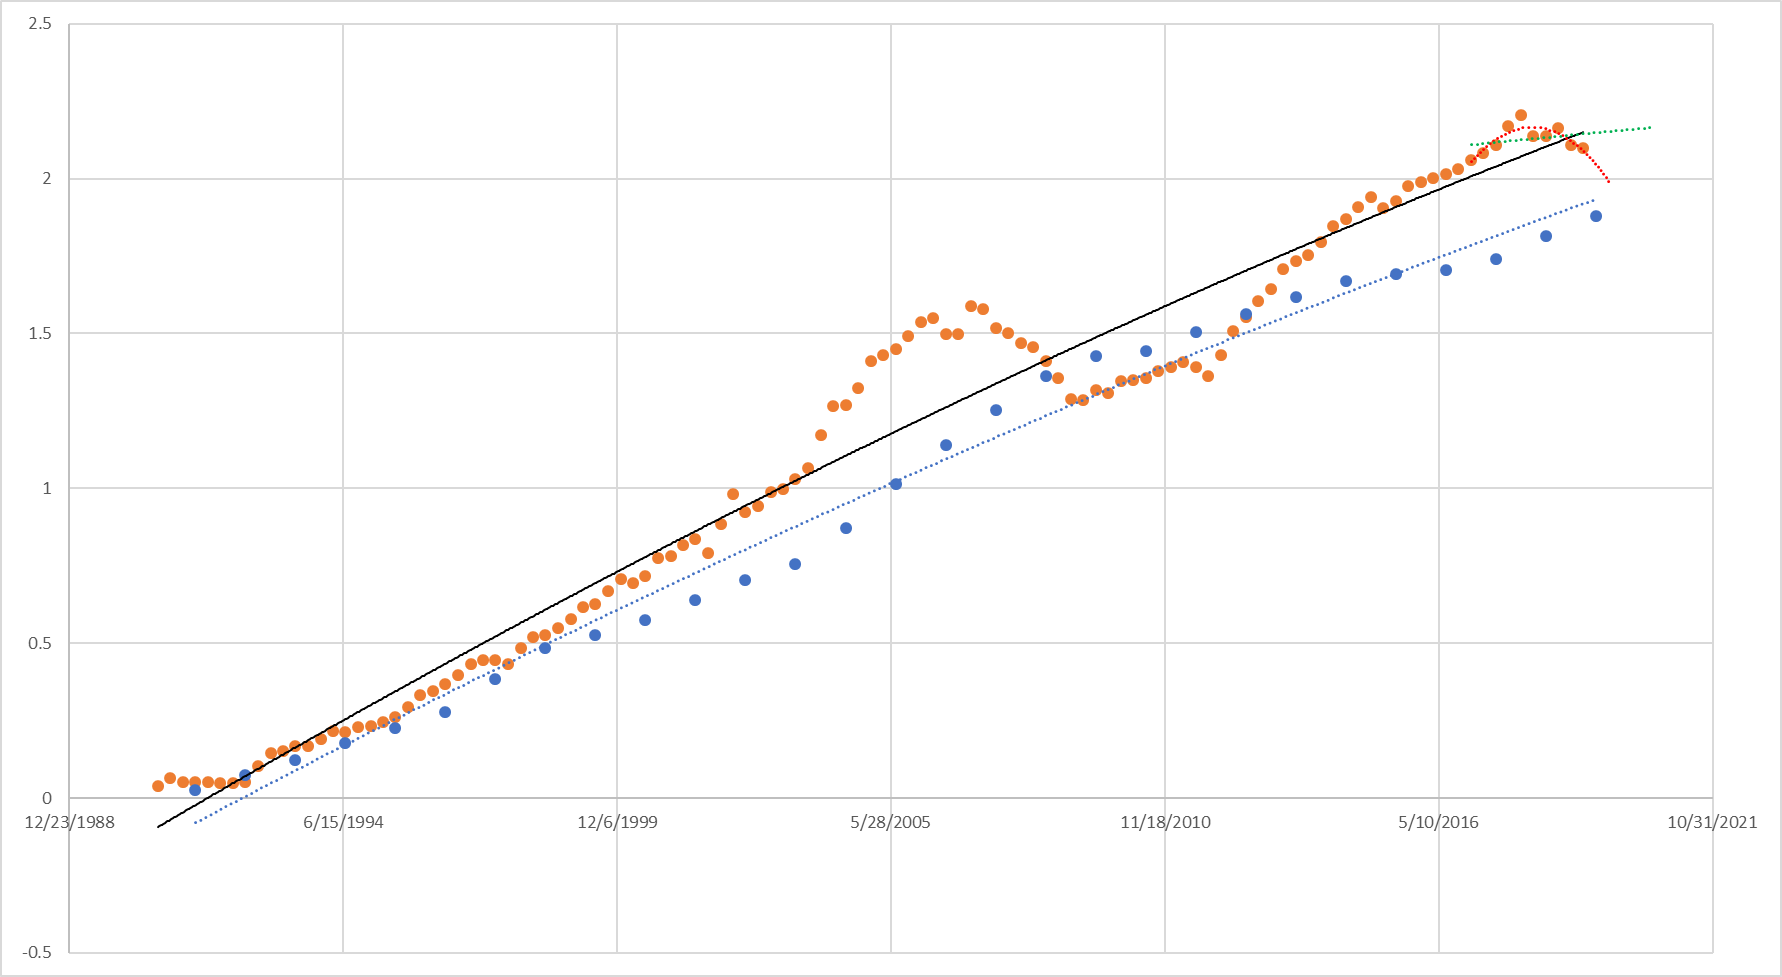 This shows the trend of the median sale price increase (orange) compared to the median increase in building costs since 1990. The past 6 quarters have shown a weakening in the housing market, and some declines. It remains to be seen whether this will be a short-lived flattening of returns (similar to the early 1990s, and displayed by the extrapolated green line above) or a pullback towards builder cost trends similar to 2008 (extrapolated by the red line above).